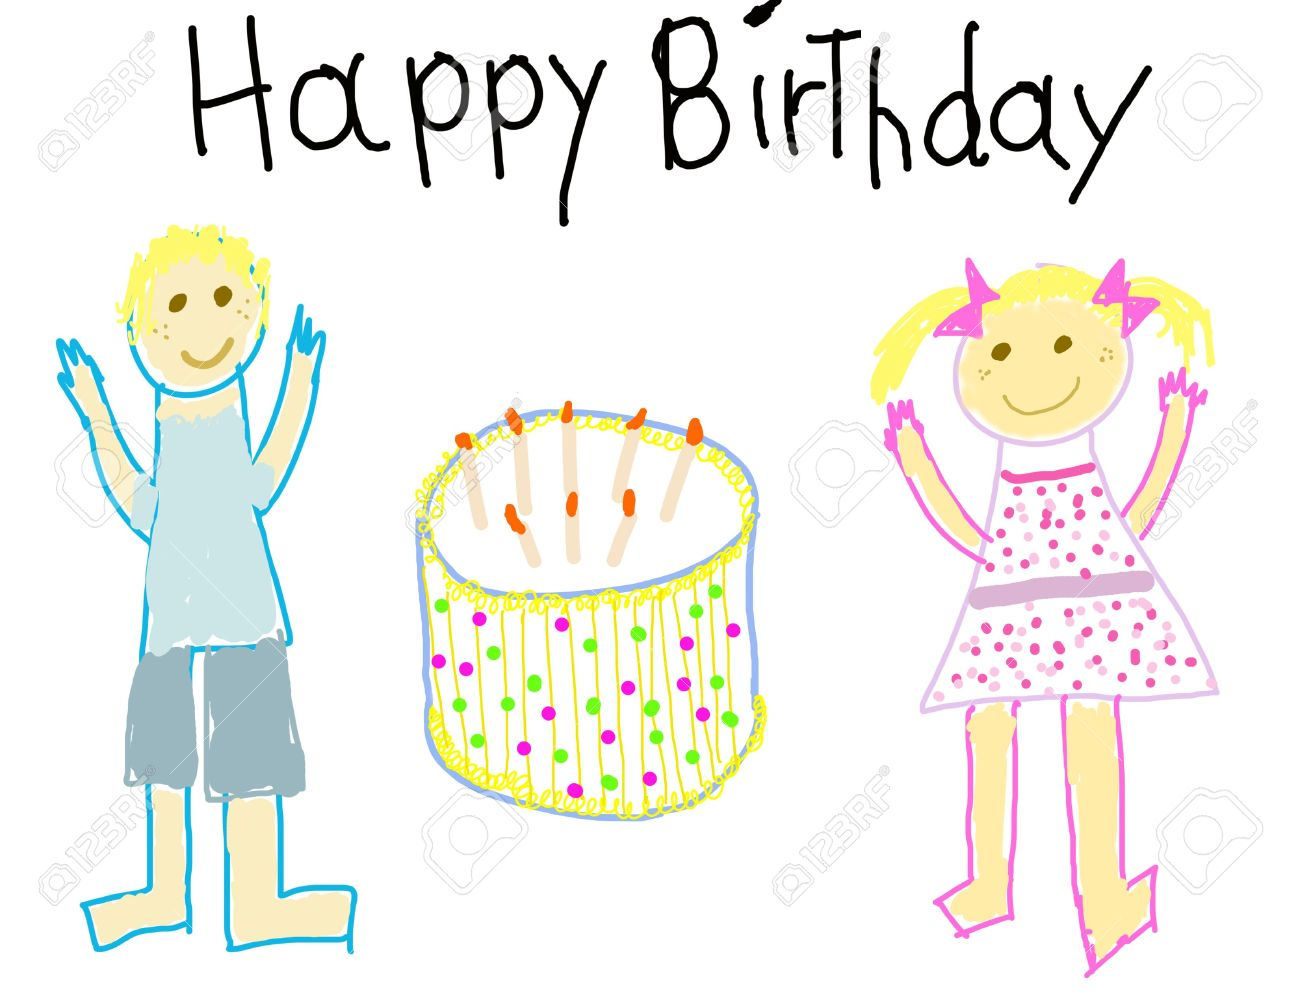 Child Like Drawing Of A Boy Girl With Happy Birthday